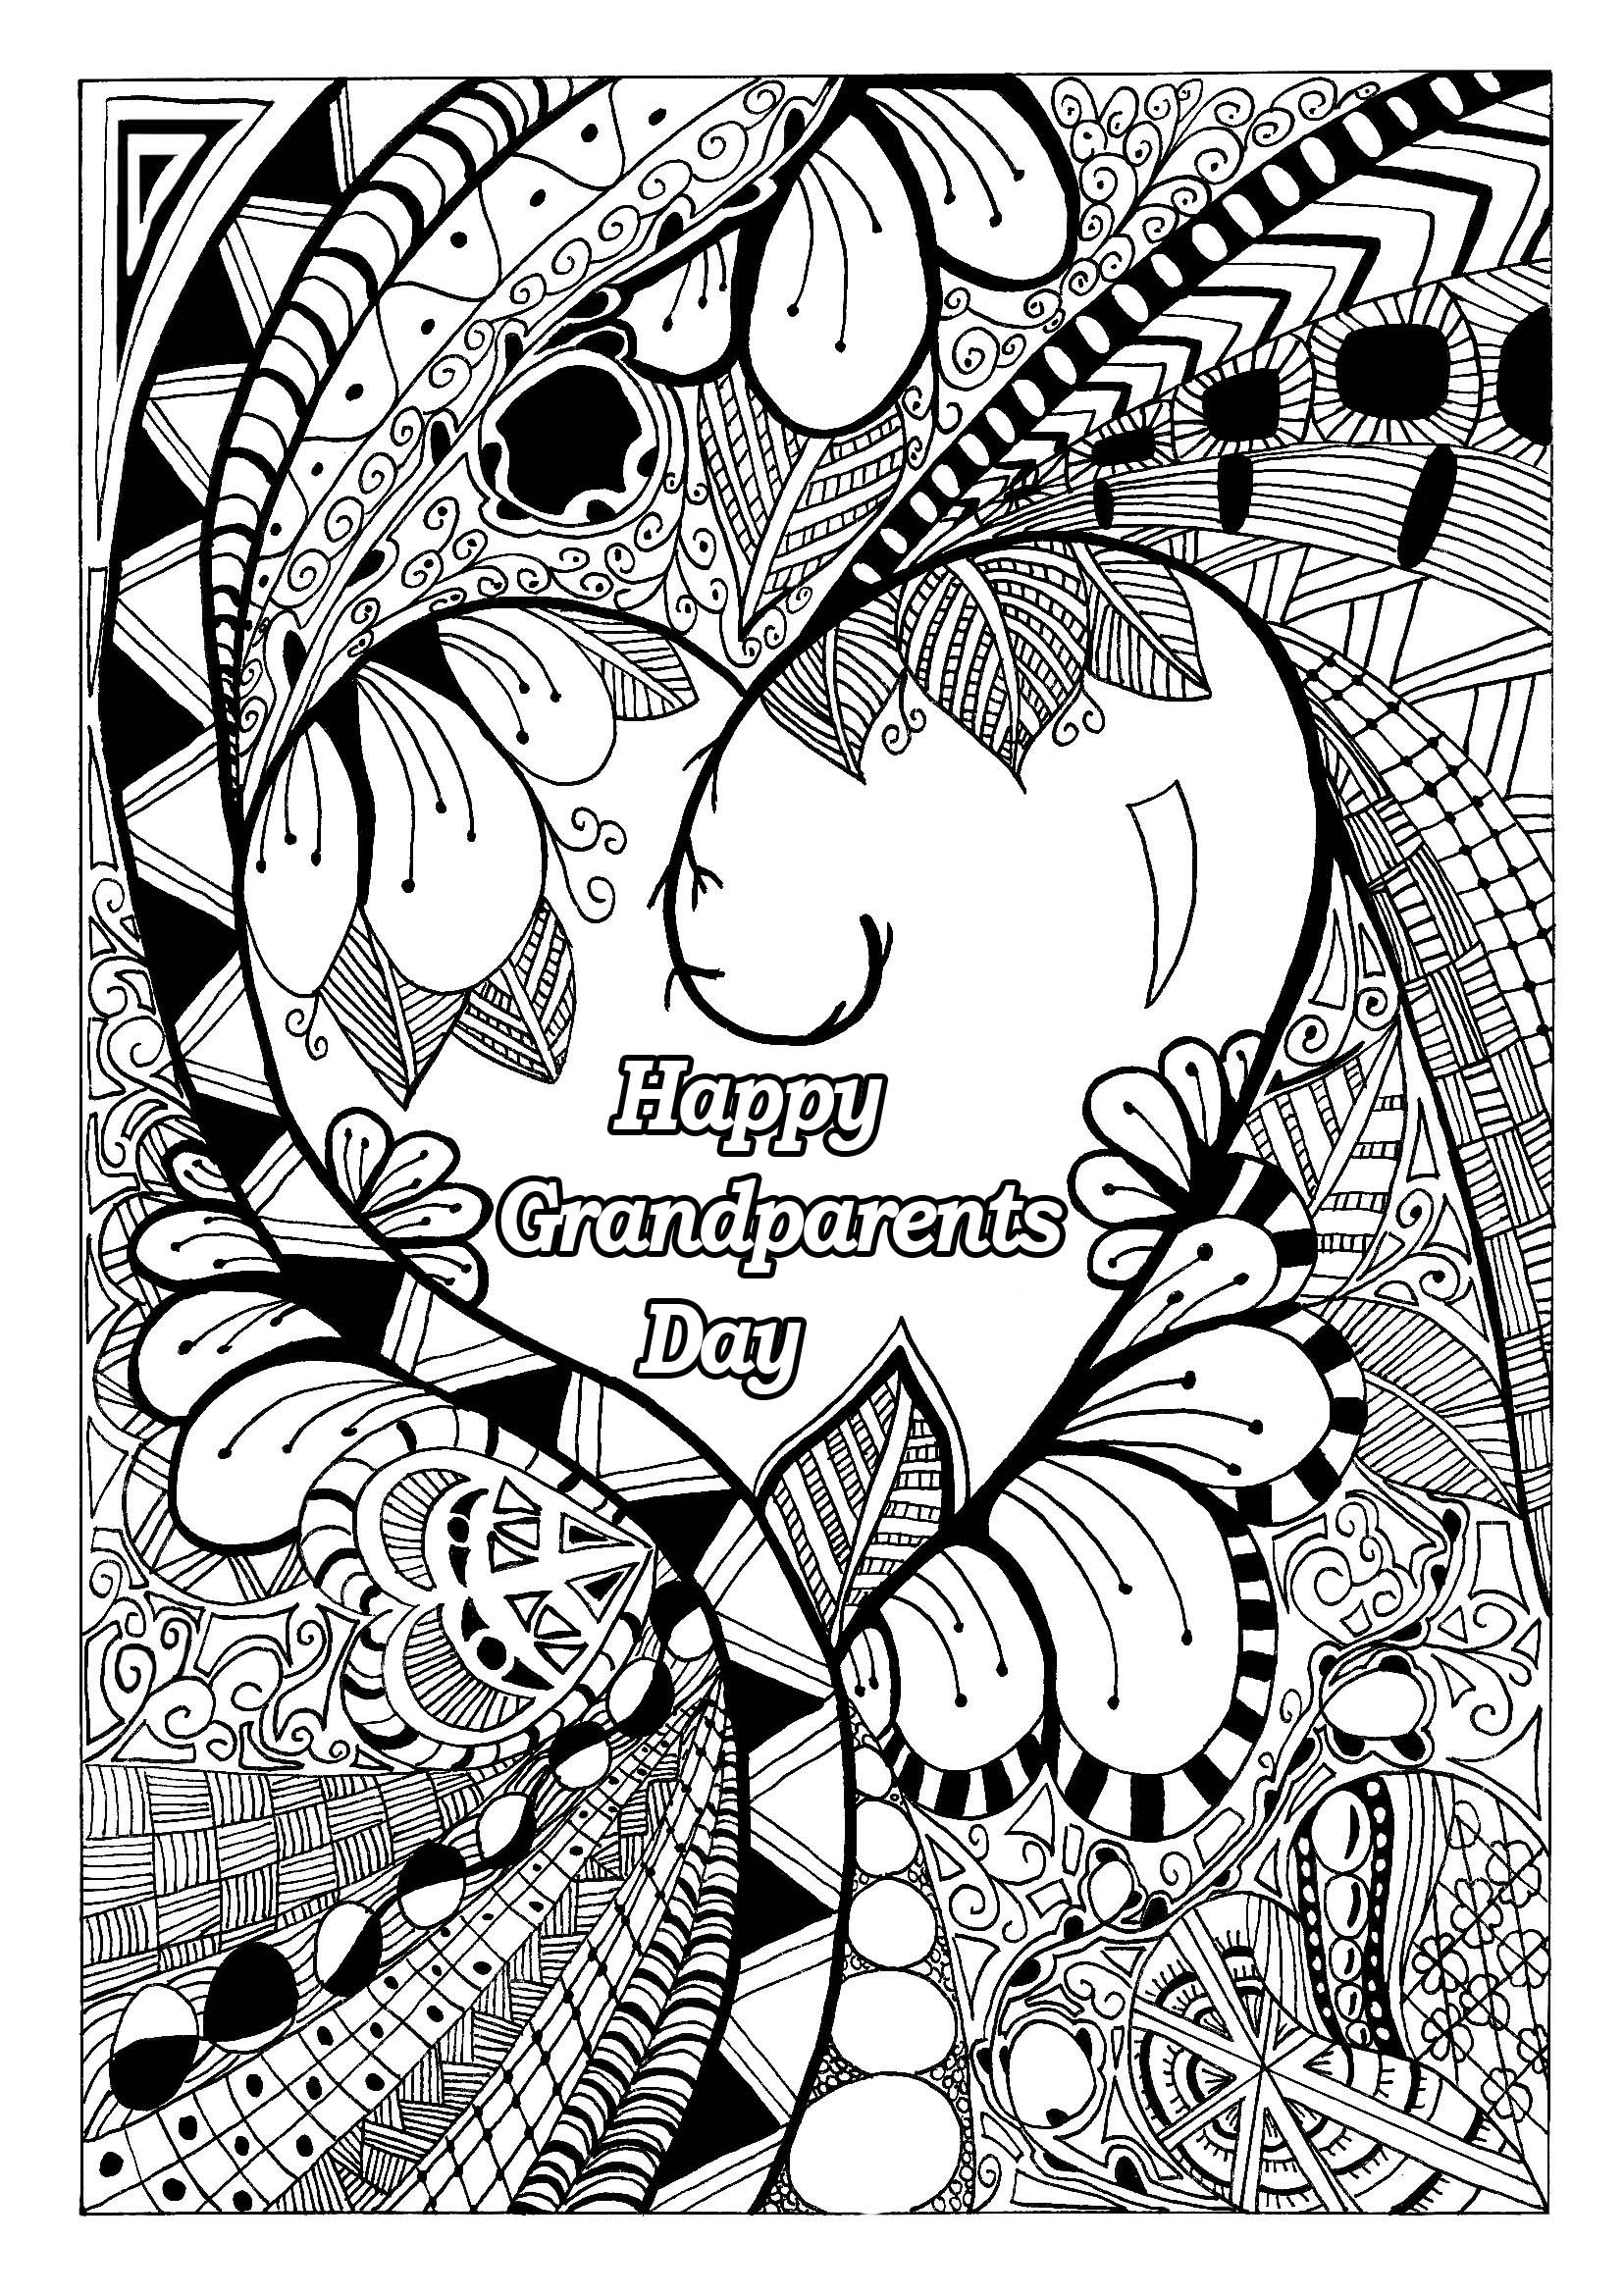 Grandparents day 1 - Gr&parents Day Adult Coloring Pages